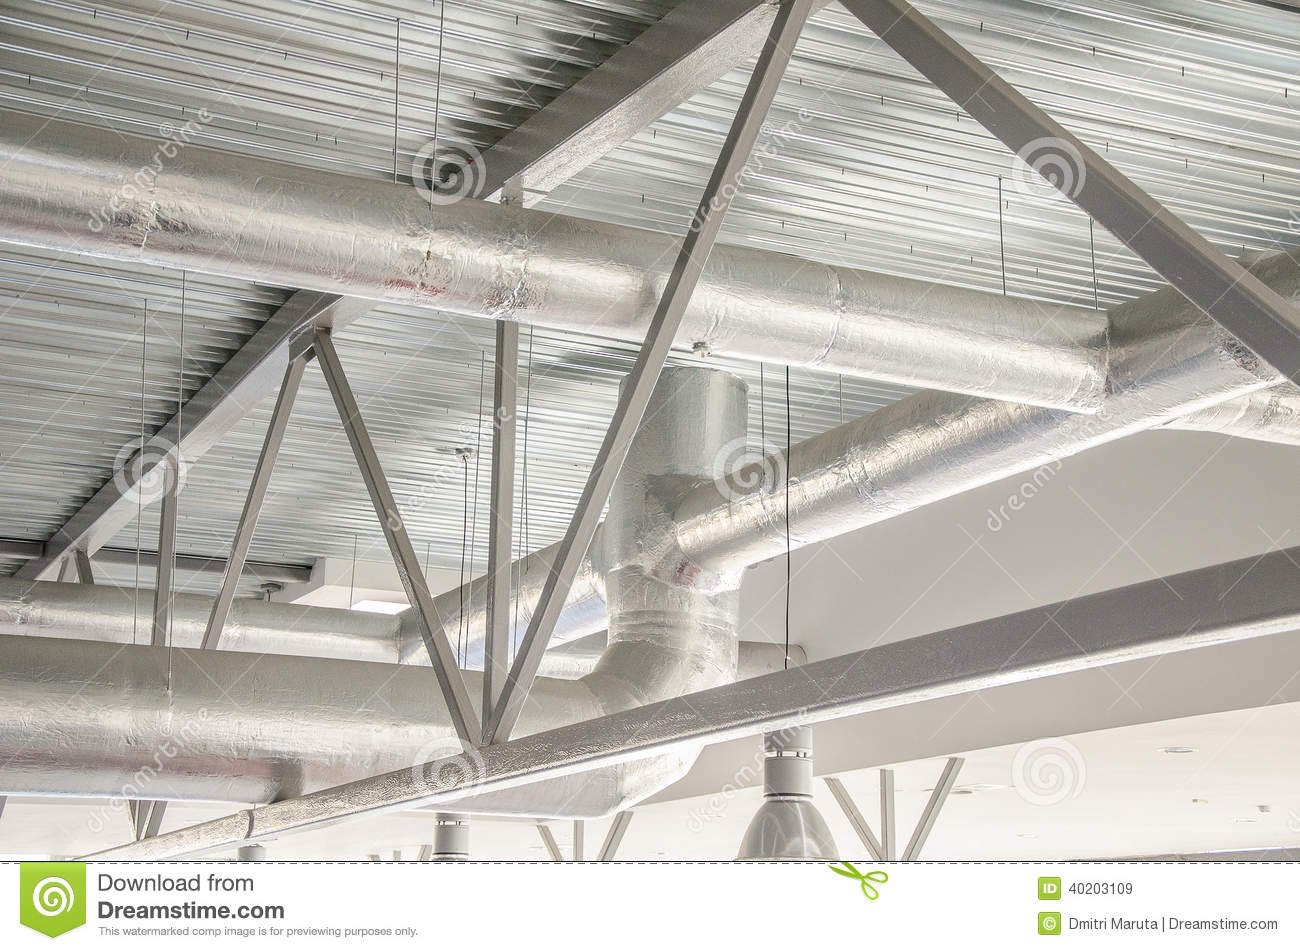 Industrial Steel Ventilation Pipes. Stock Photo Image: 40203109 #83A328